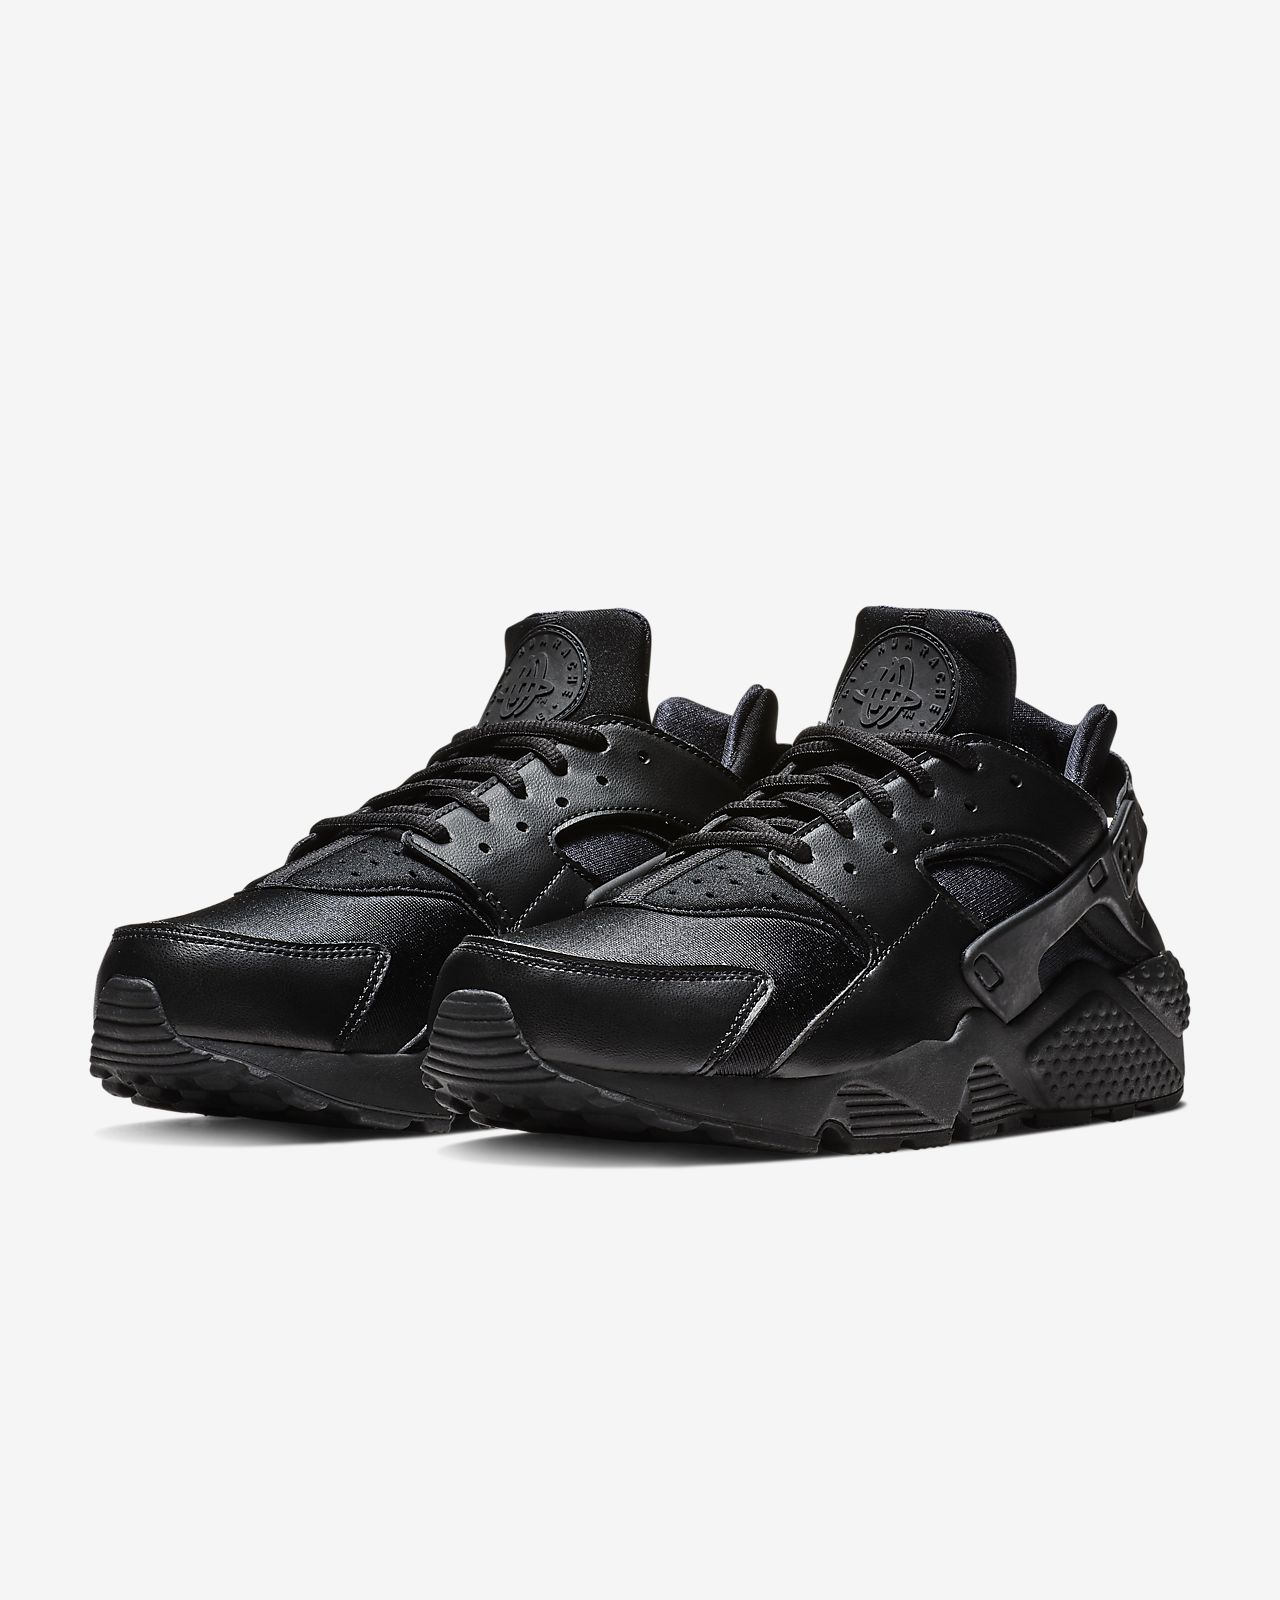 the best attitude 95e4e a8825 ... Nike Air Huarache Women s Shoe